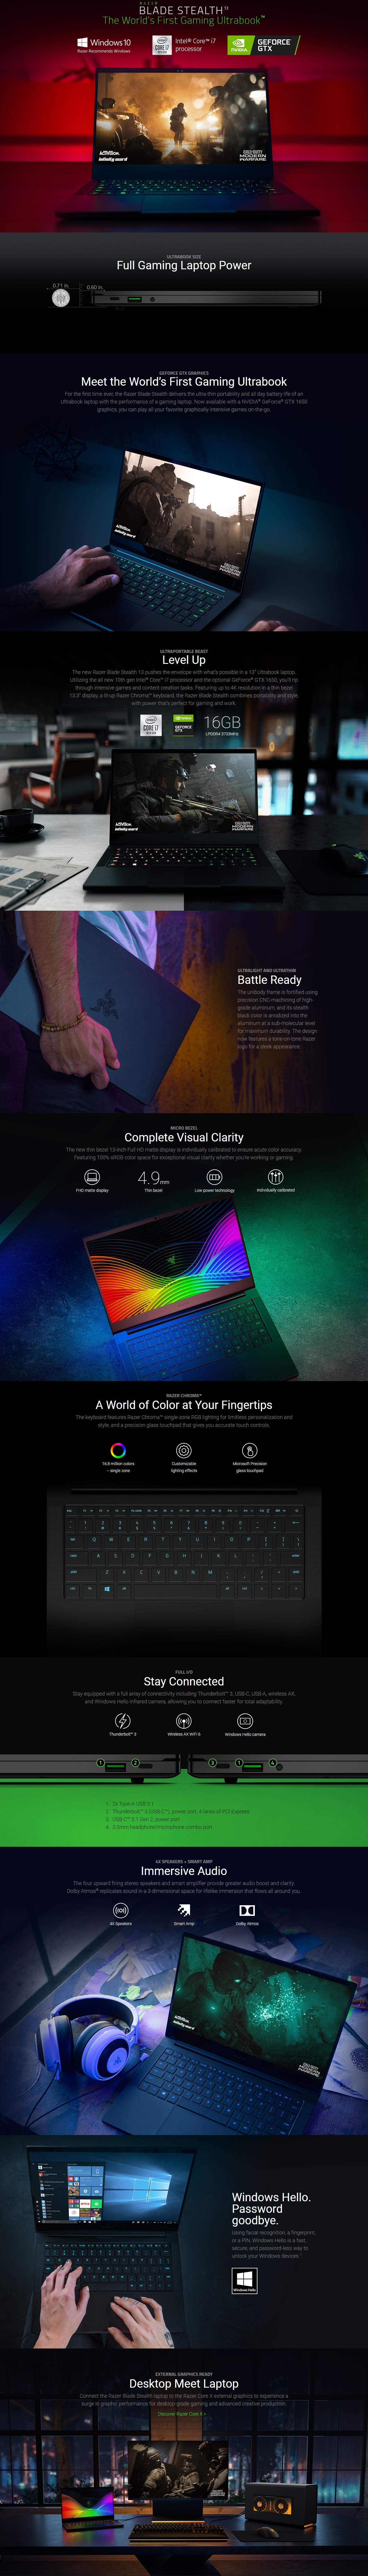 """A large marketing image providing additional information about the product Razer Blade Stealth 13.3"""" i7 Windows 10 Notebook - Additional alt info not provided"""